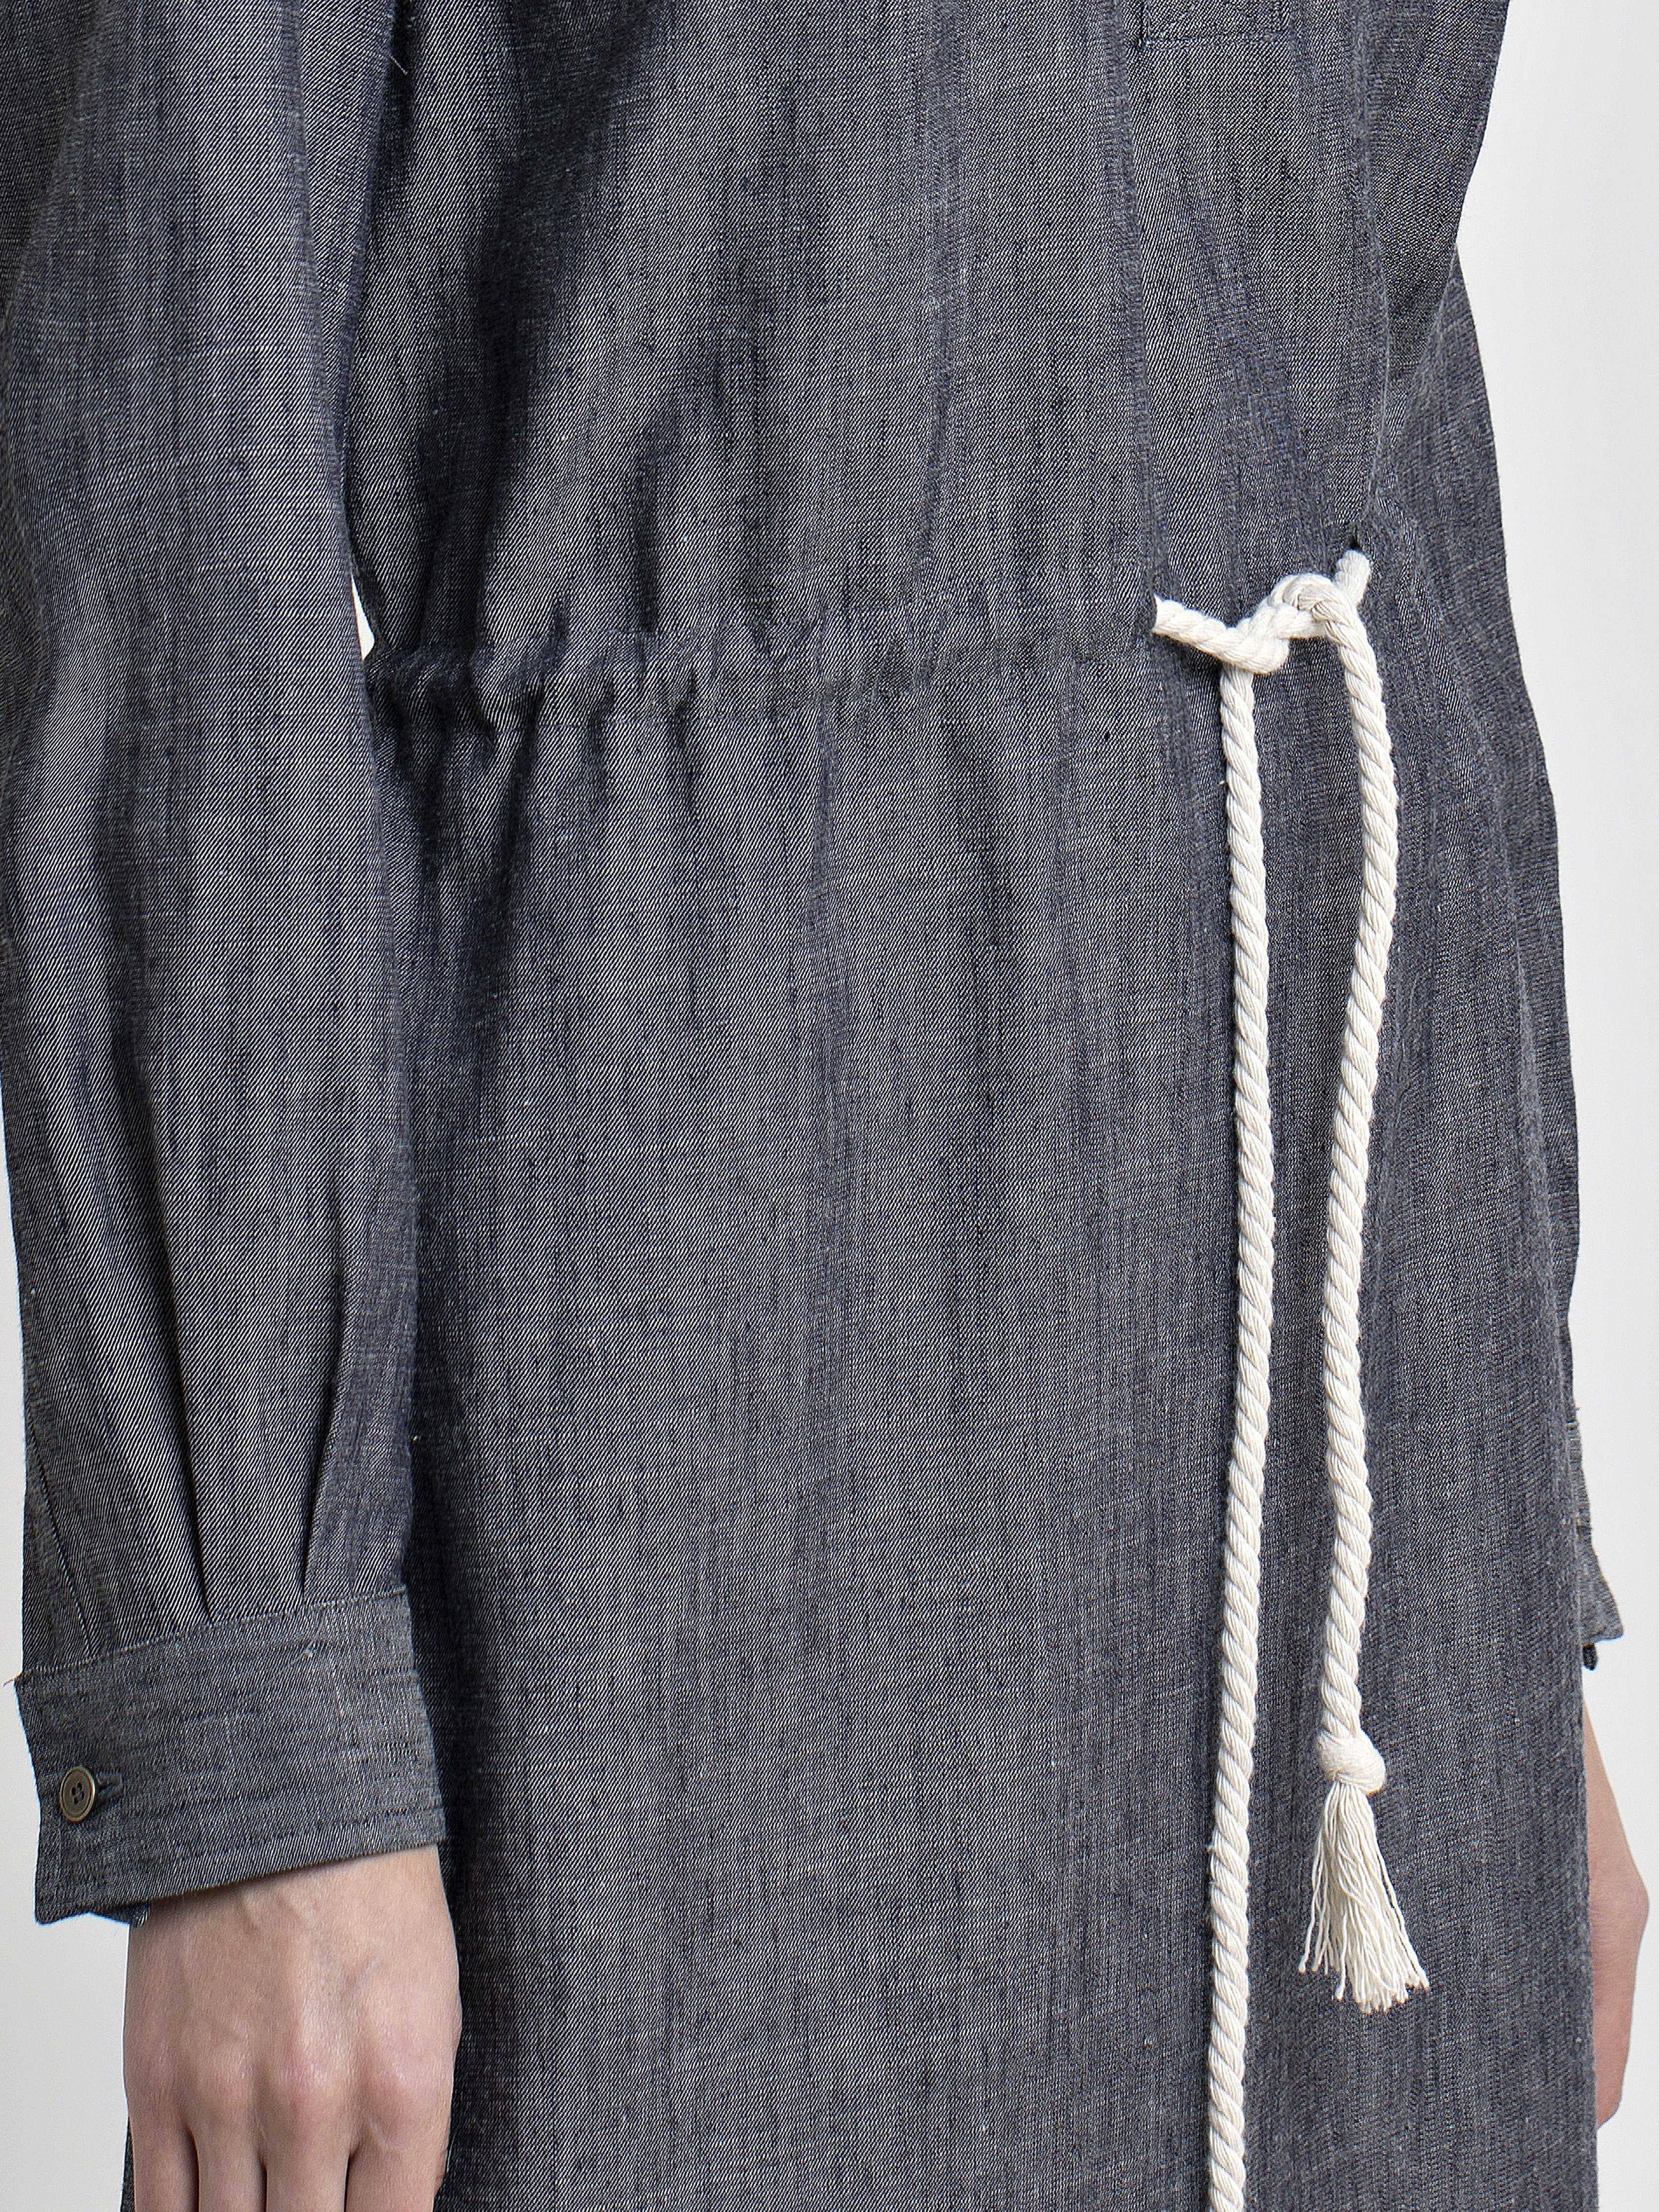 Waist close up view of a female model wearing long sleeve straight cut denim dress with drawstring inserted belt. From the RÉZO women's collection.